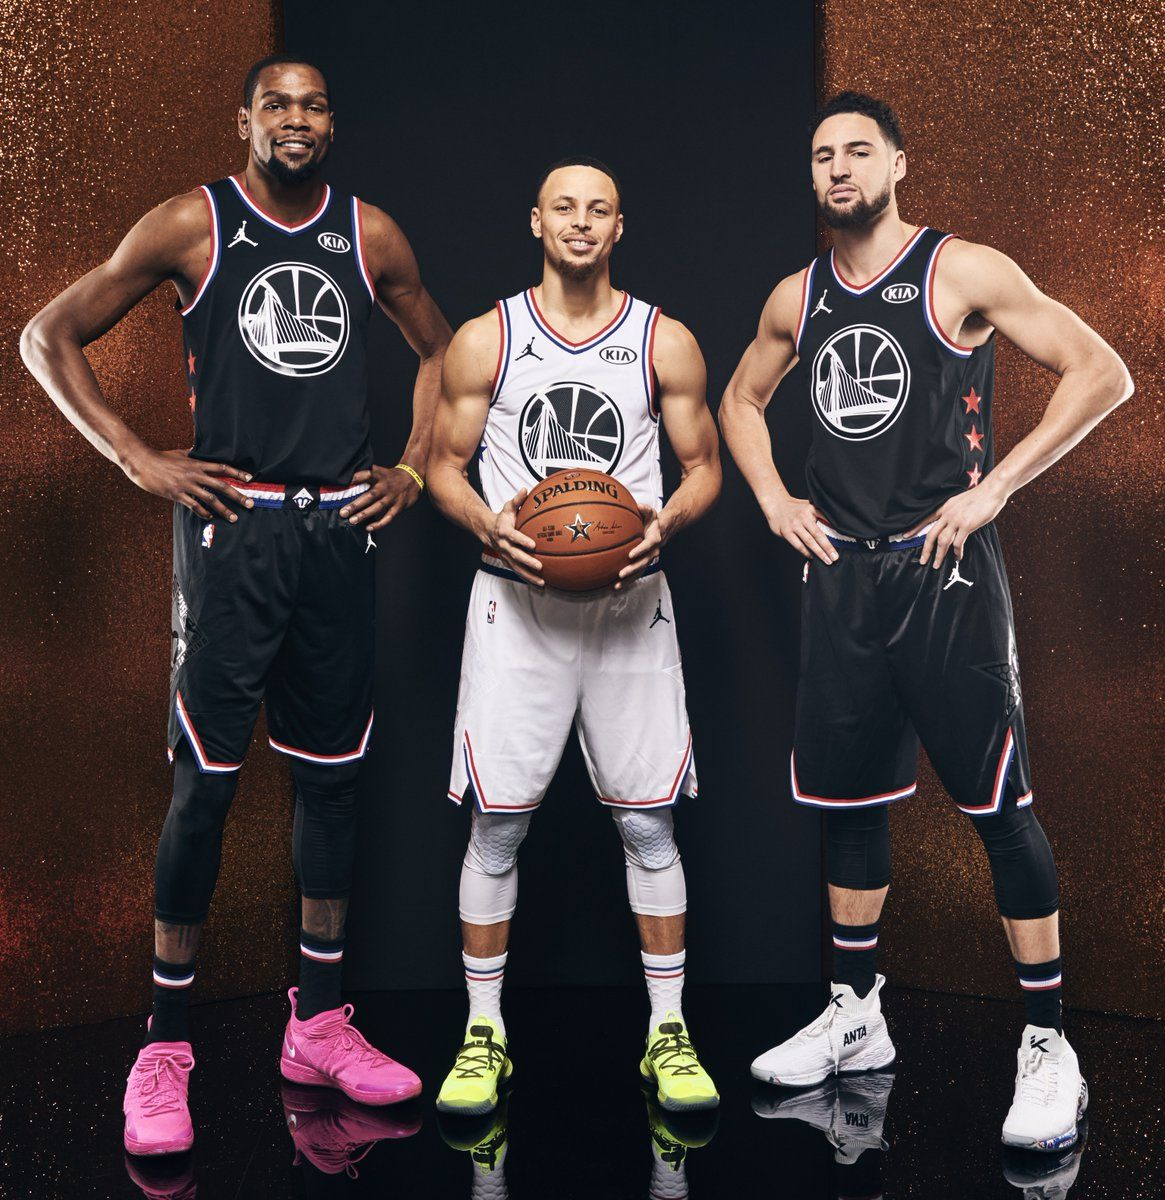 2019 Nba All Star Nbaallstar Twitter Basketball Players Nba Best Nba Players Mvp Basketball